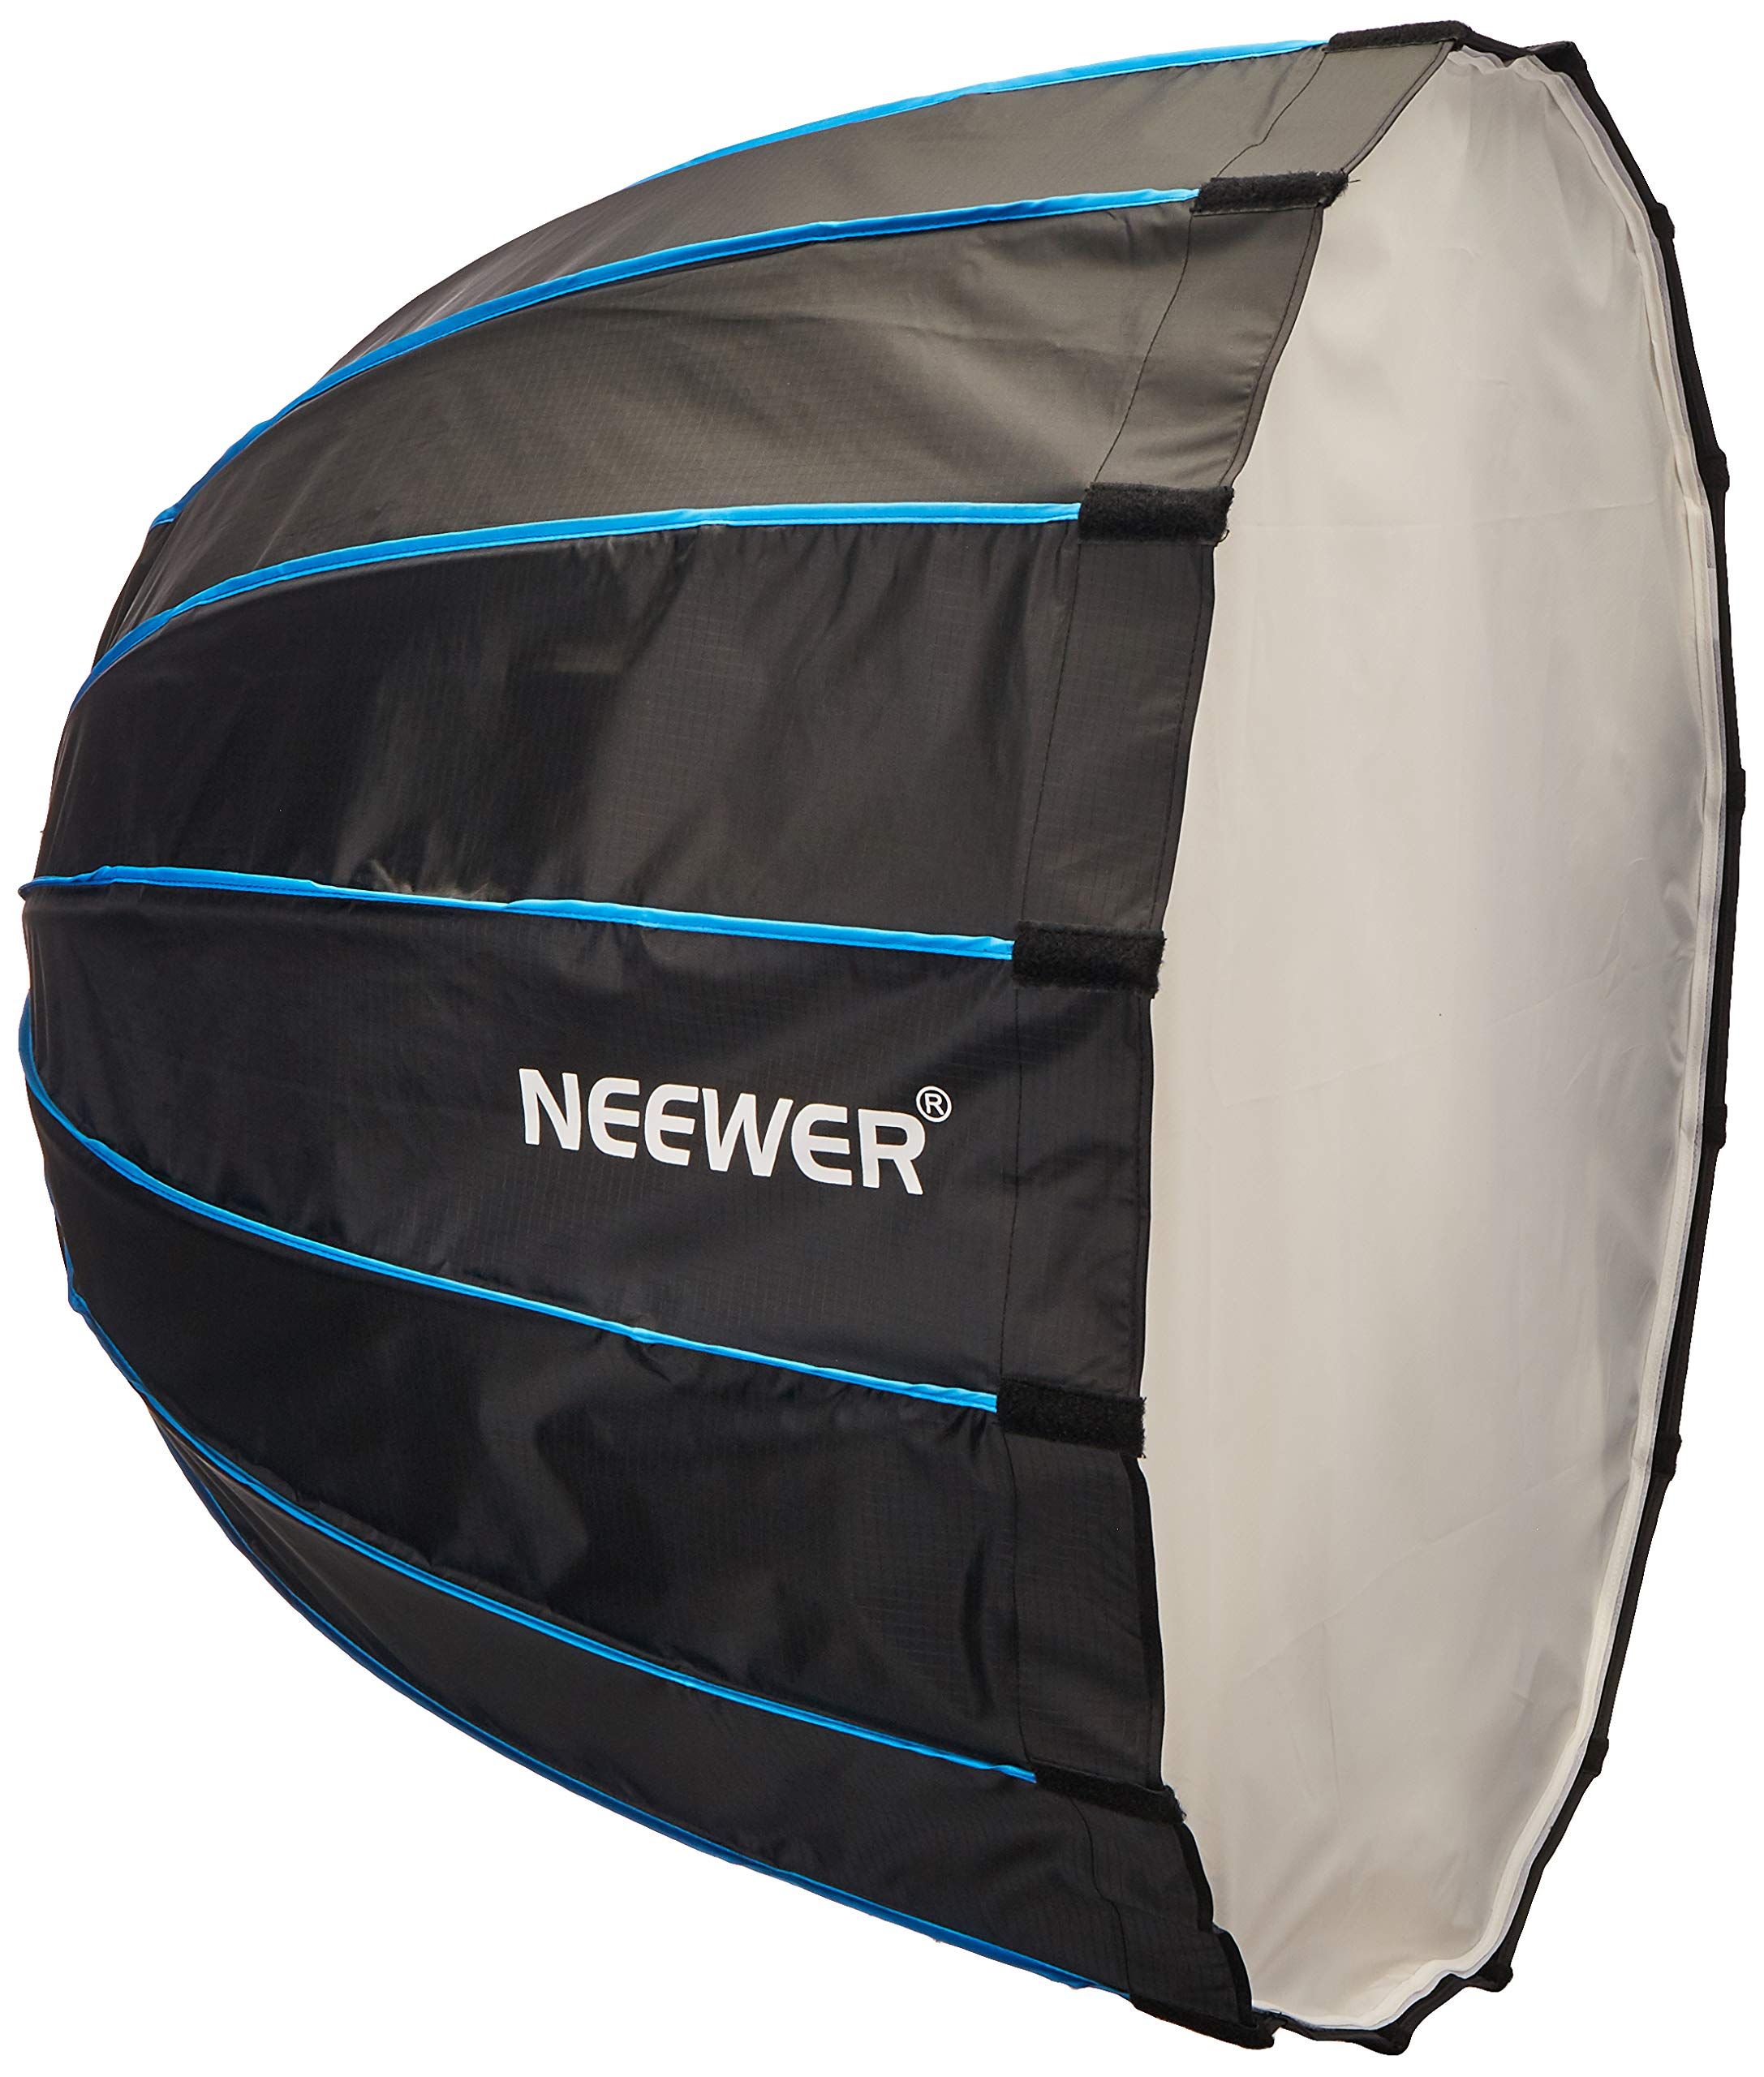 Neewer Hexadecagon Softbox 36 inches/90 Centimeters with Blue Rim and Bowens Mount, Portable and Quick Folding Softbox Diffuser for Photography Speedlites Flash Monolight and More by Neewer